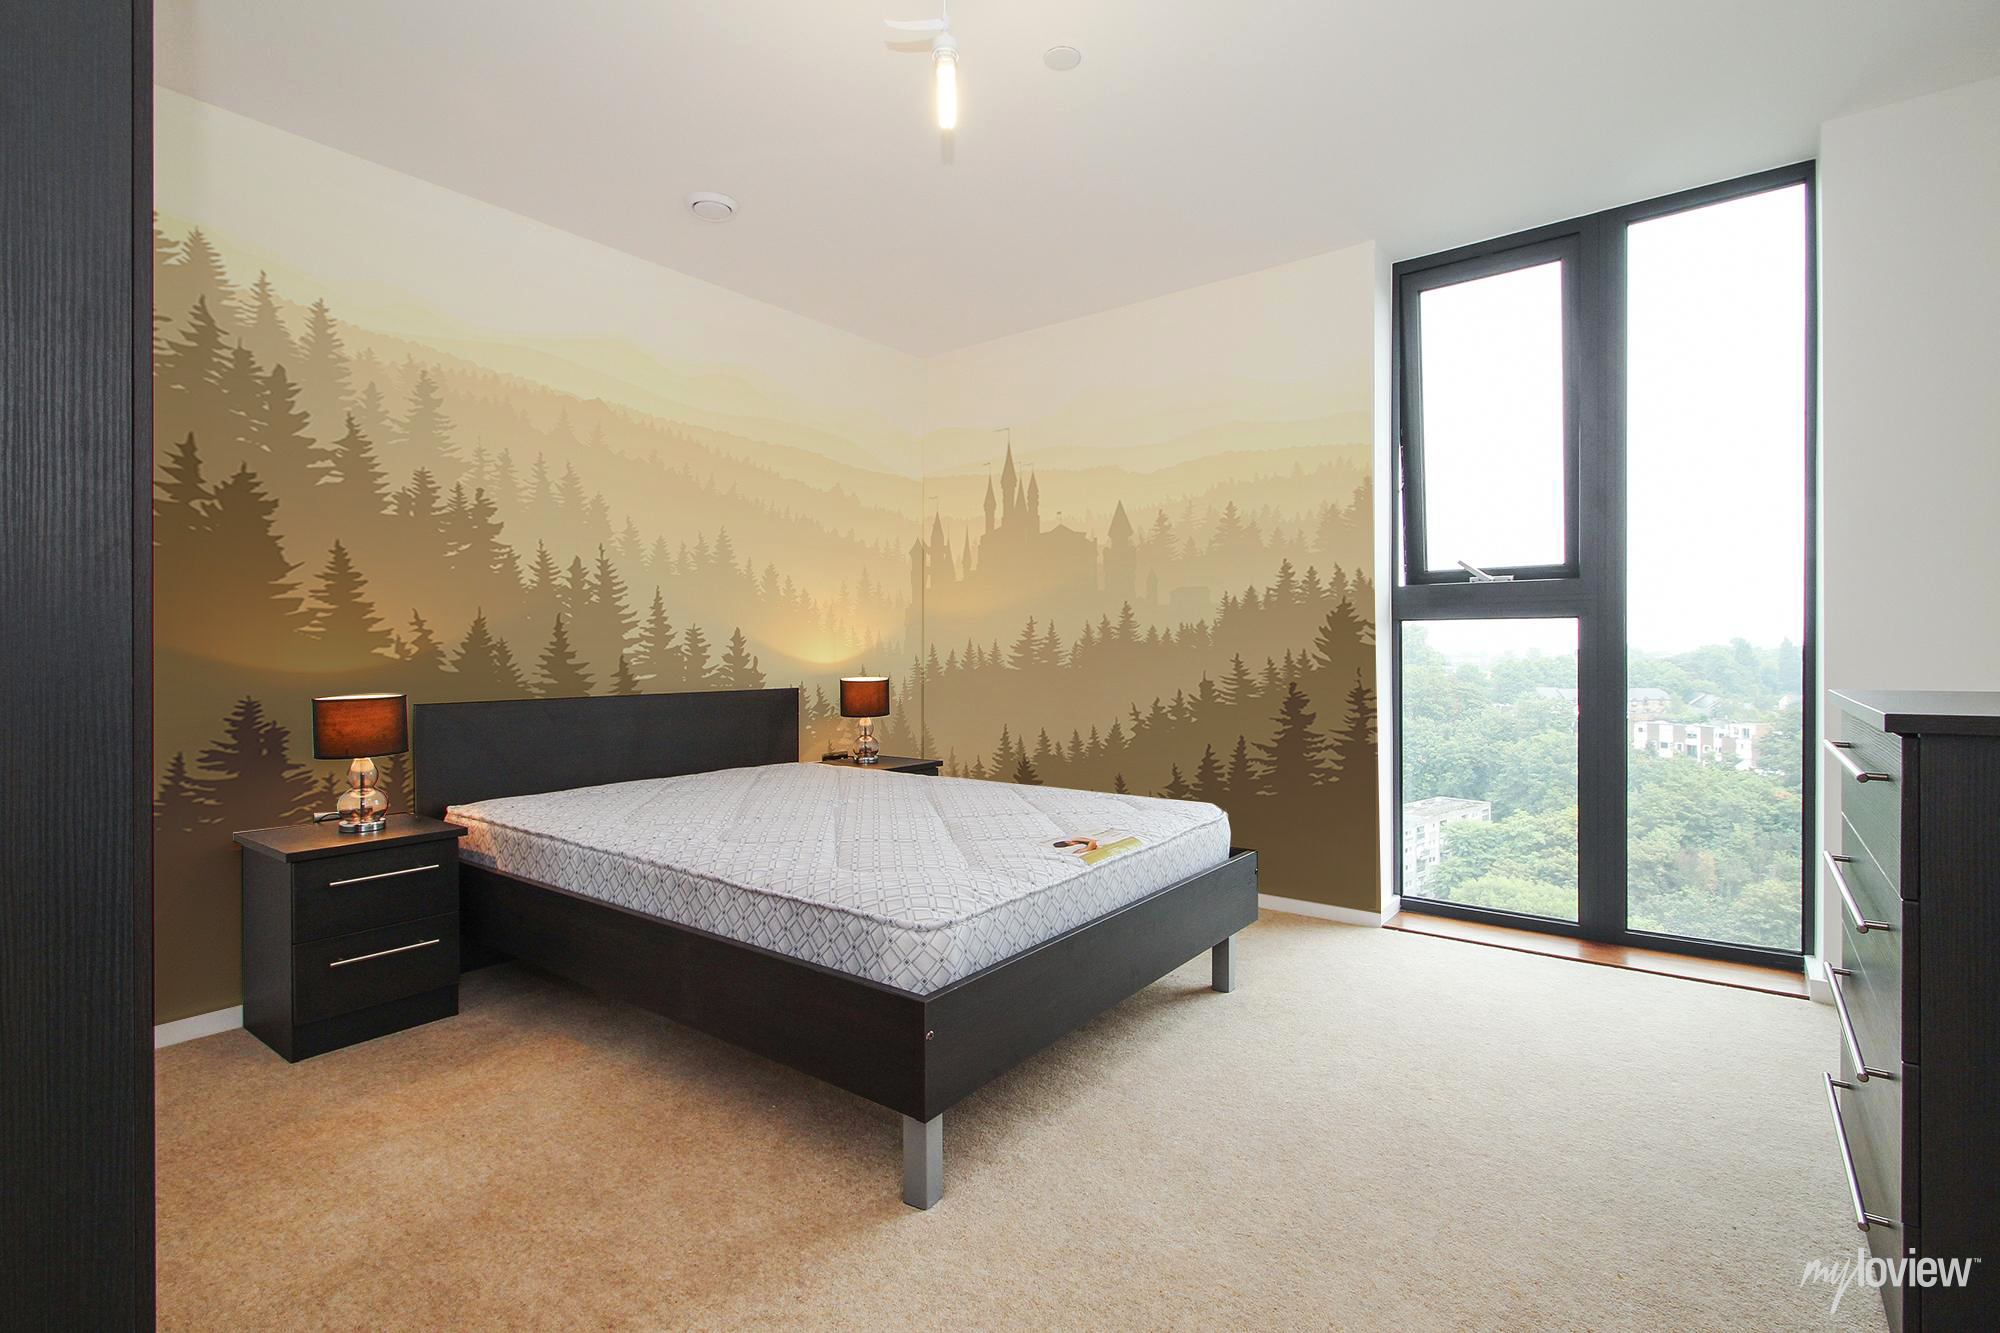 Misty forest and castle wallmural bedroom myloview landscapes misty forest and castle wallmural bedroom myloview amipublicfo Image collections